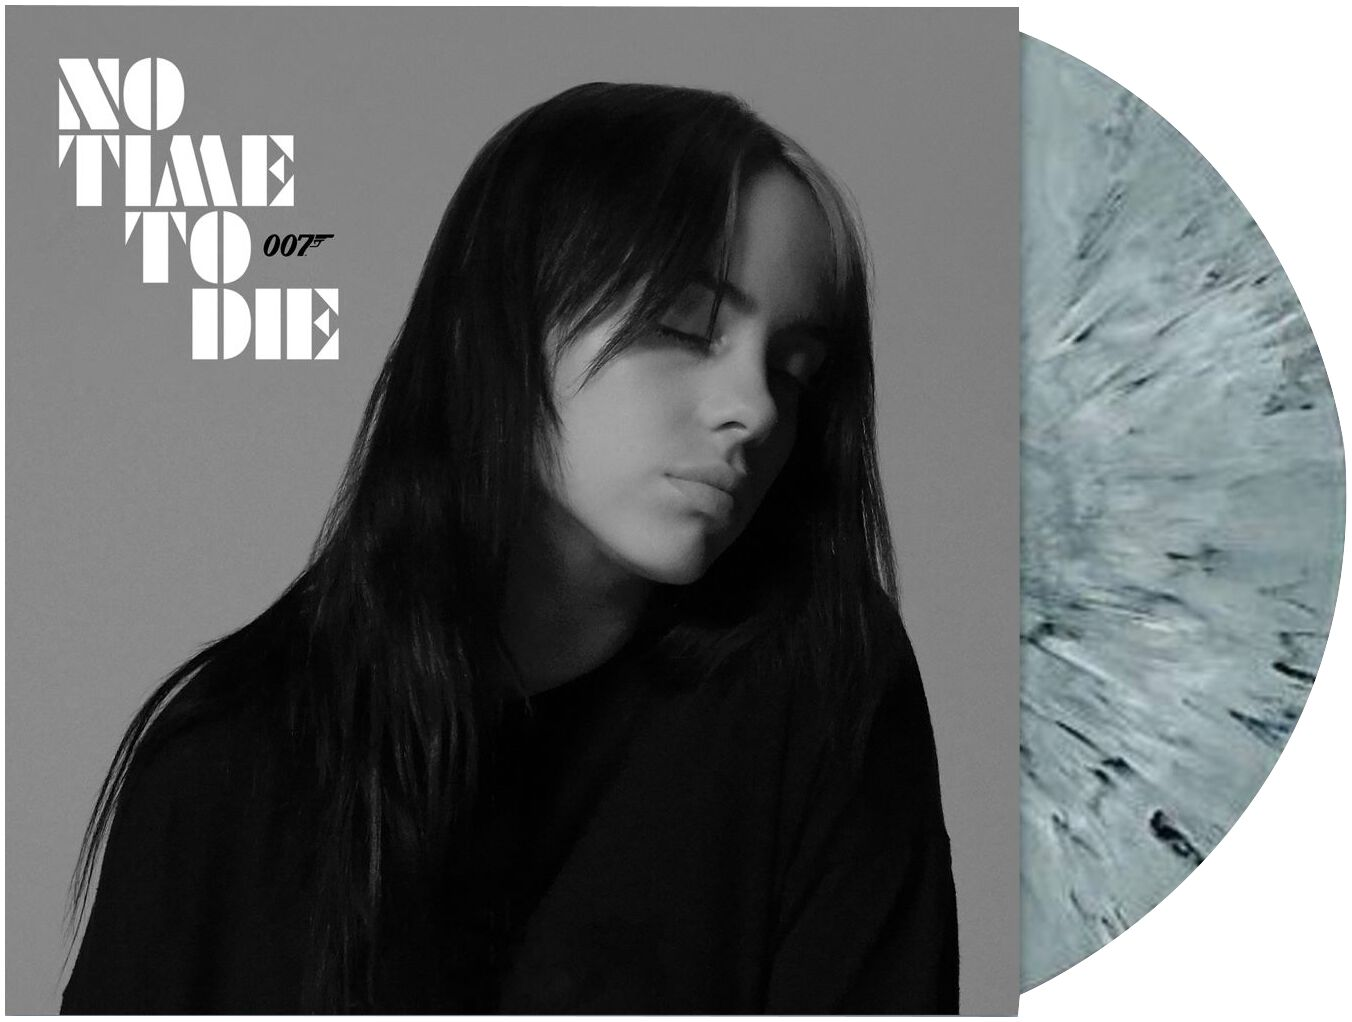 Image of Eilish, Billie No time to die 7 inch-SINGLE farbig